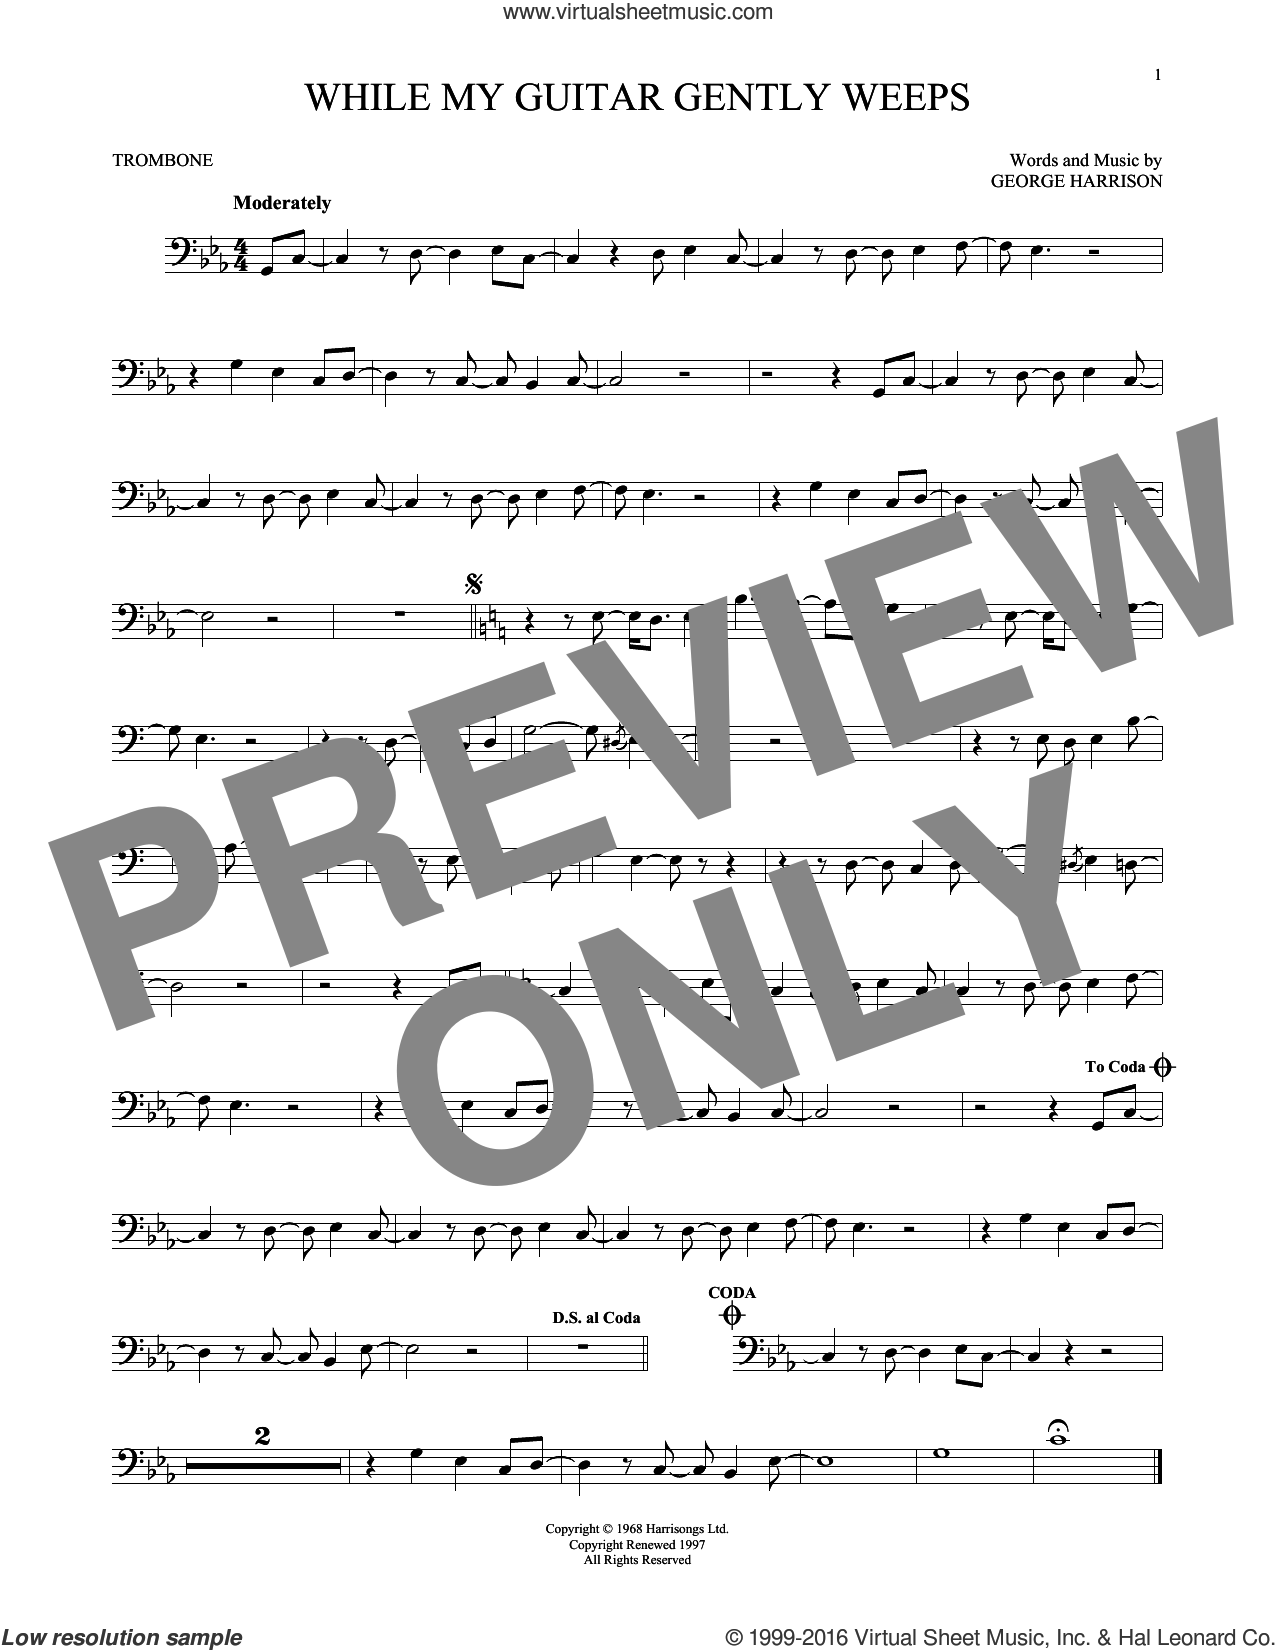 While My Guitar Gently Weeps sheet music for trombone solo by The Beatles, intermediate skill level